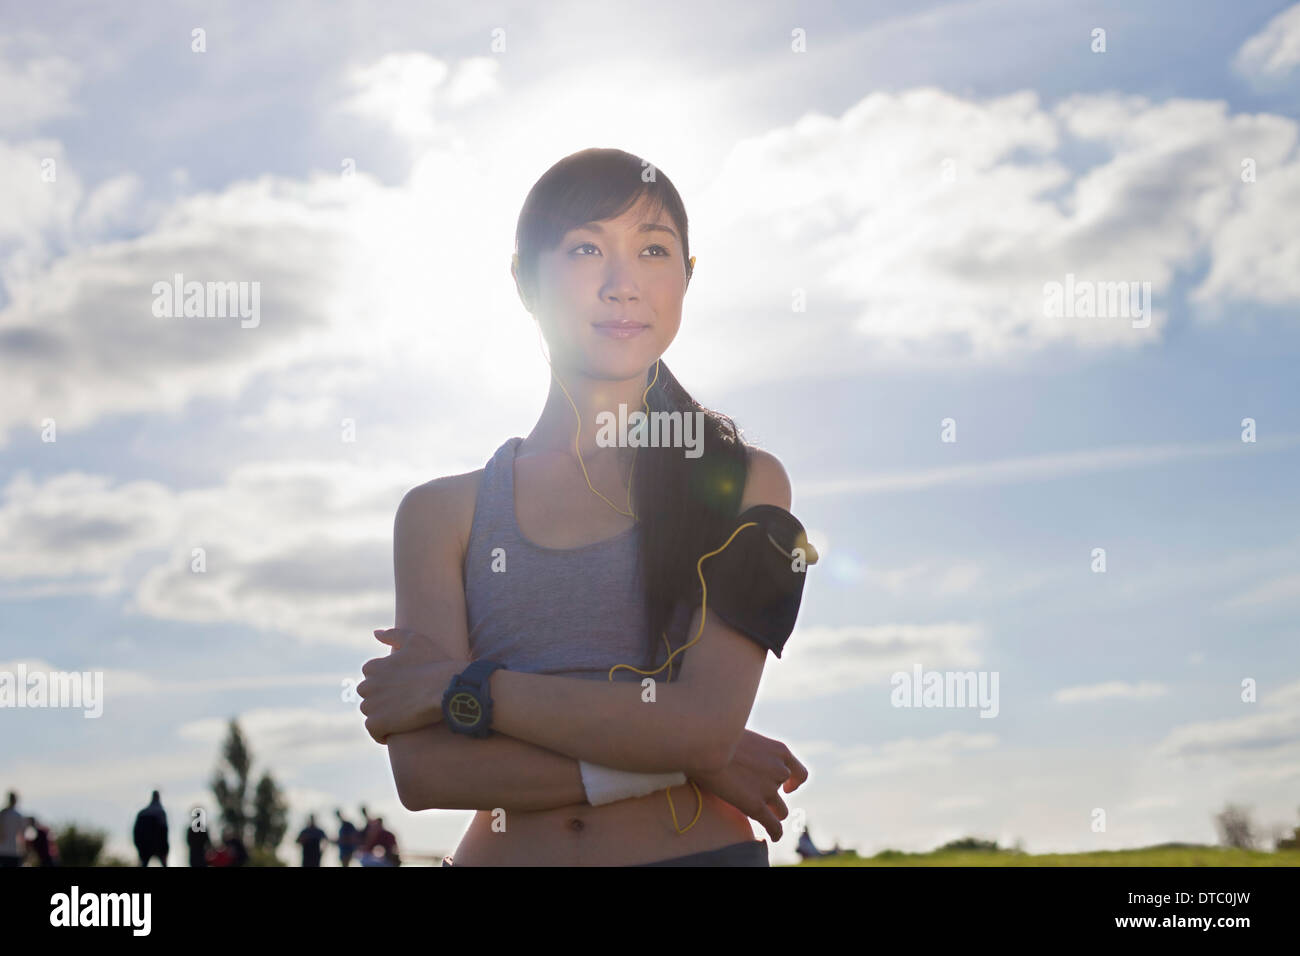 Portrait of young female runner with arms folded - Stock Image